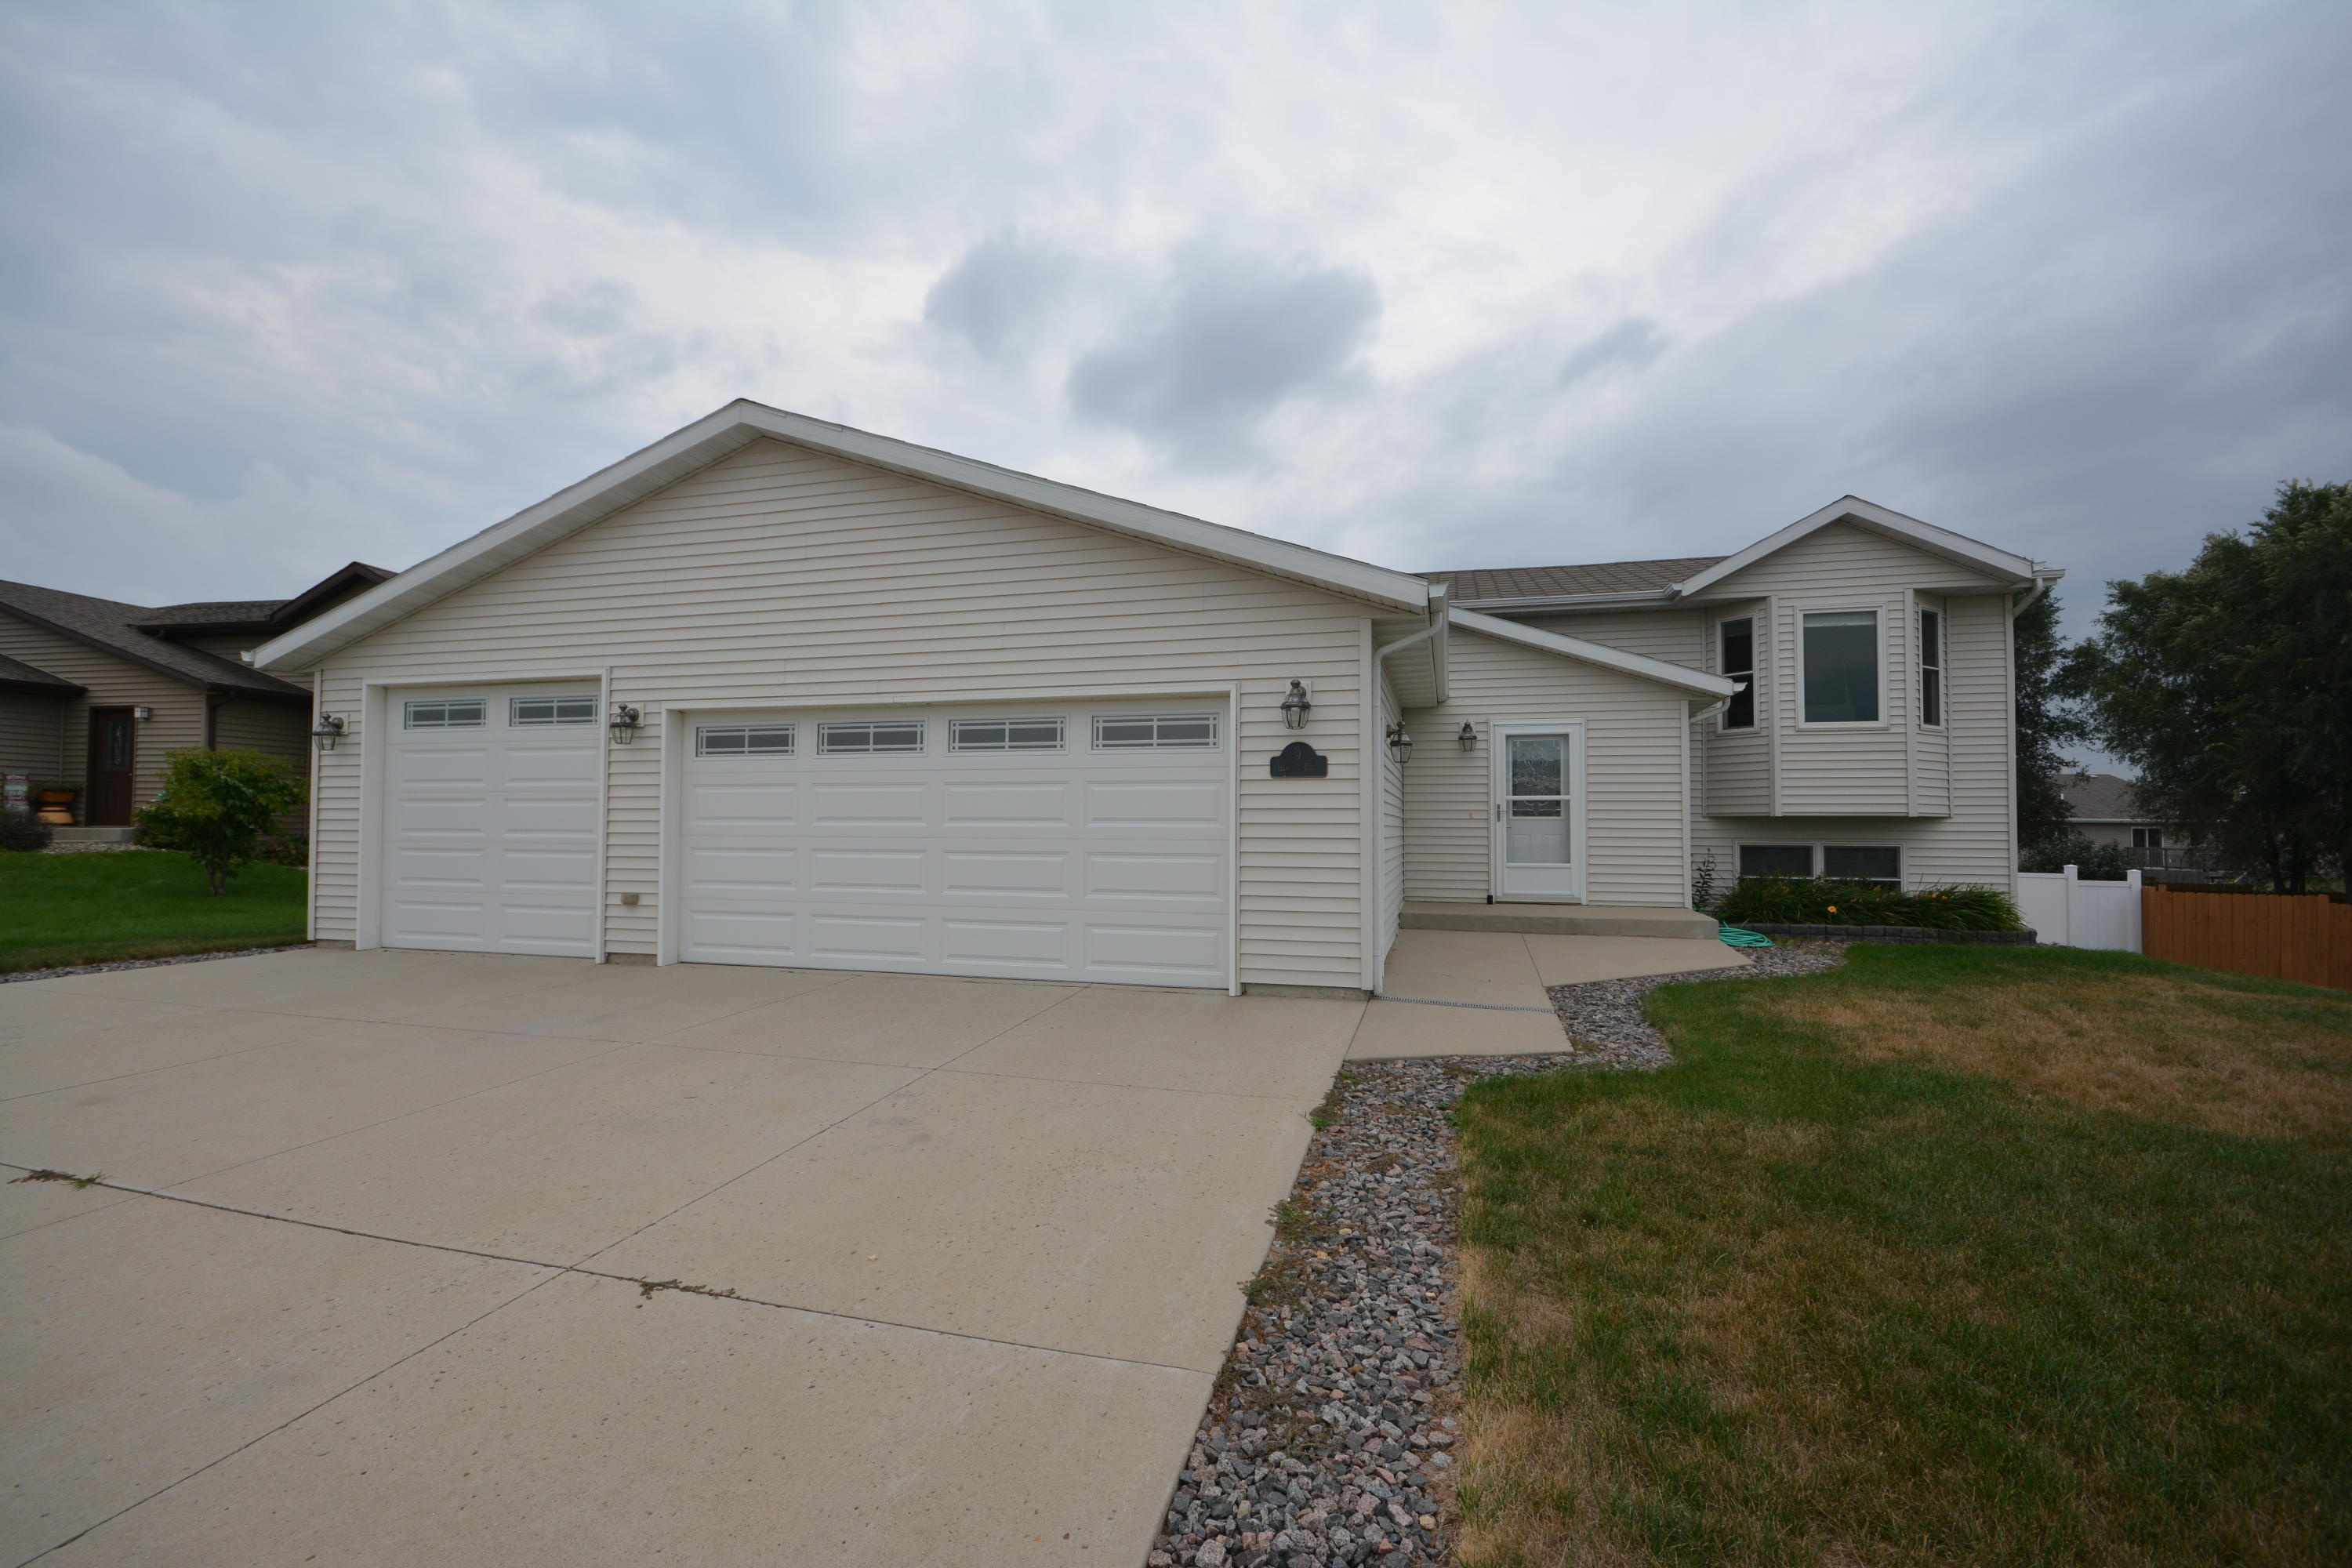 9 Humbert Drive Lincoln Nd Mls 400008 Bismarck Homes For Sale